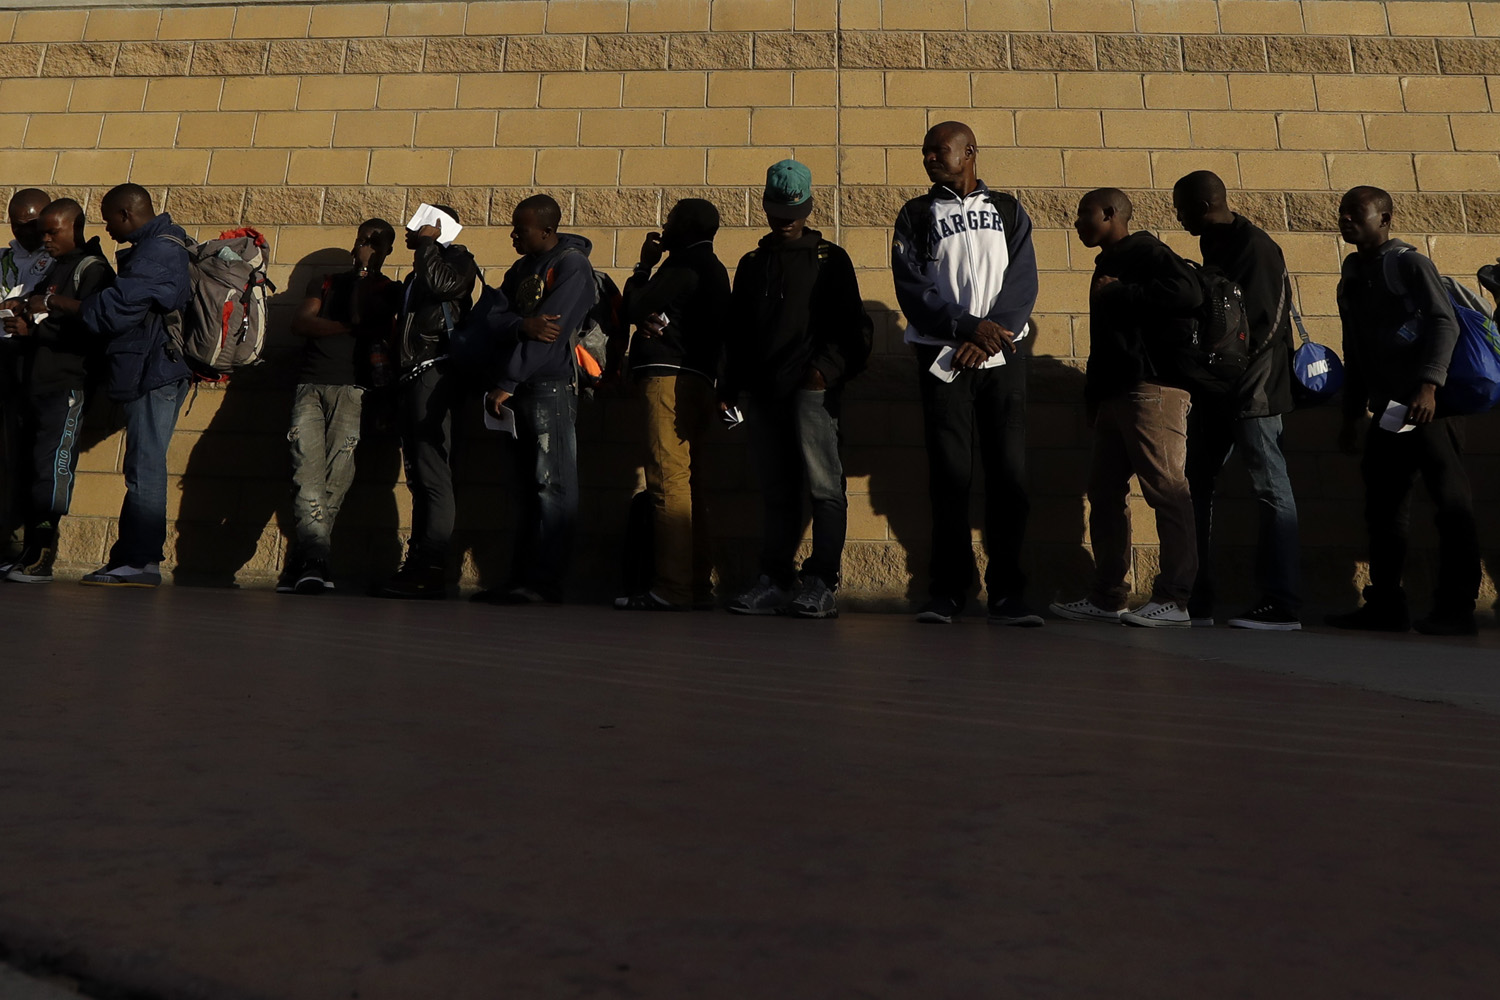 Haitian migrants line up as they wait to enter the U.S. border crossing, in Tijuana, Mexico. (Gregory Bull/AP)